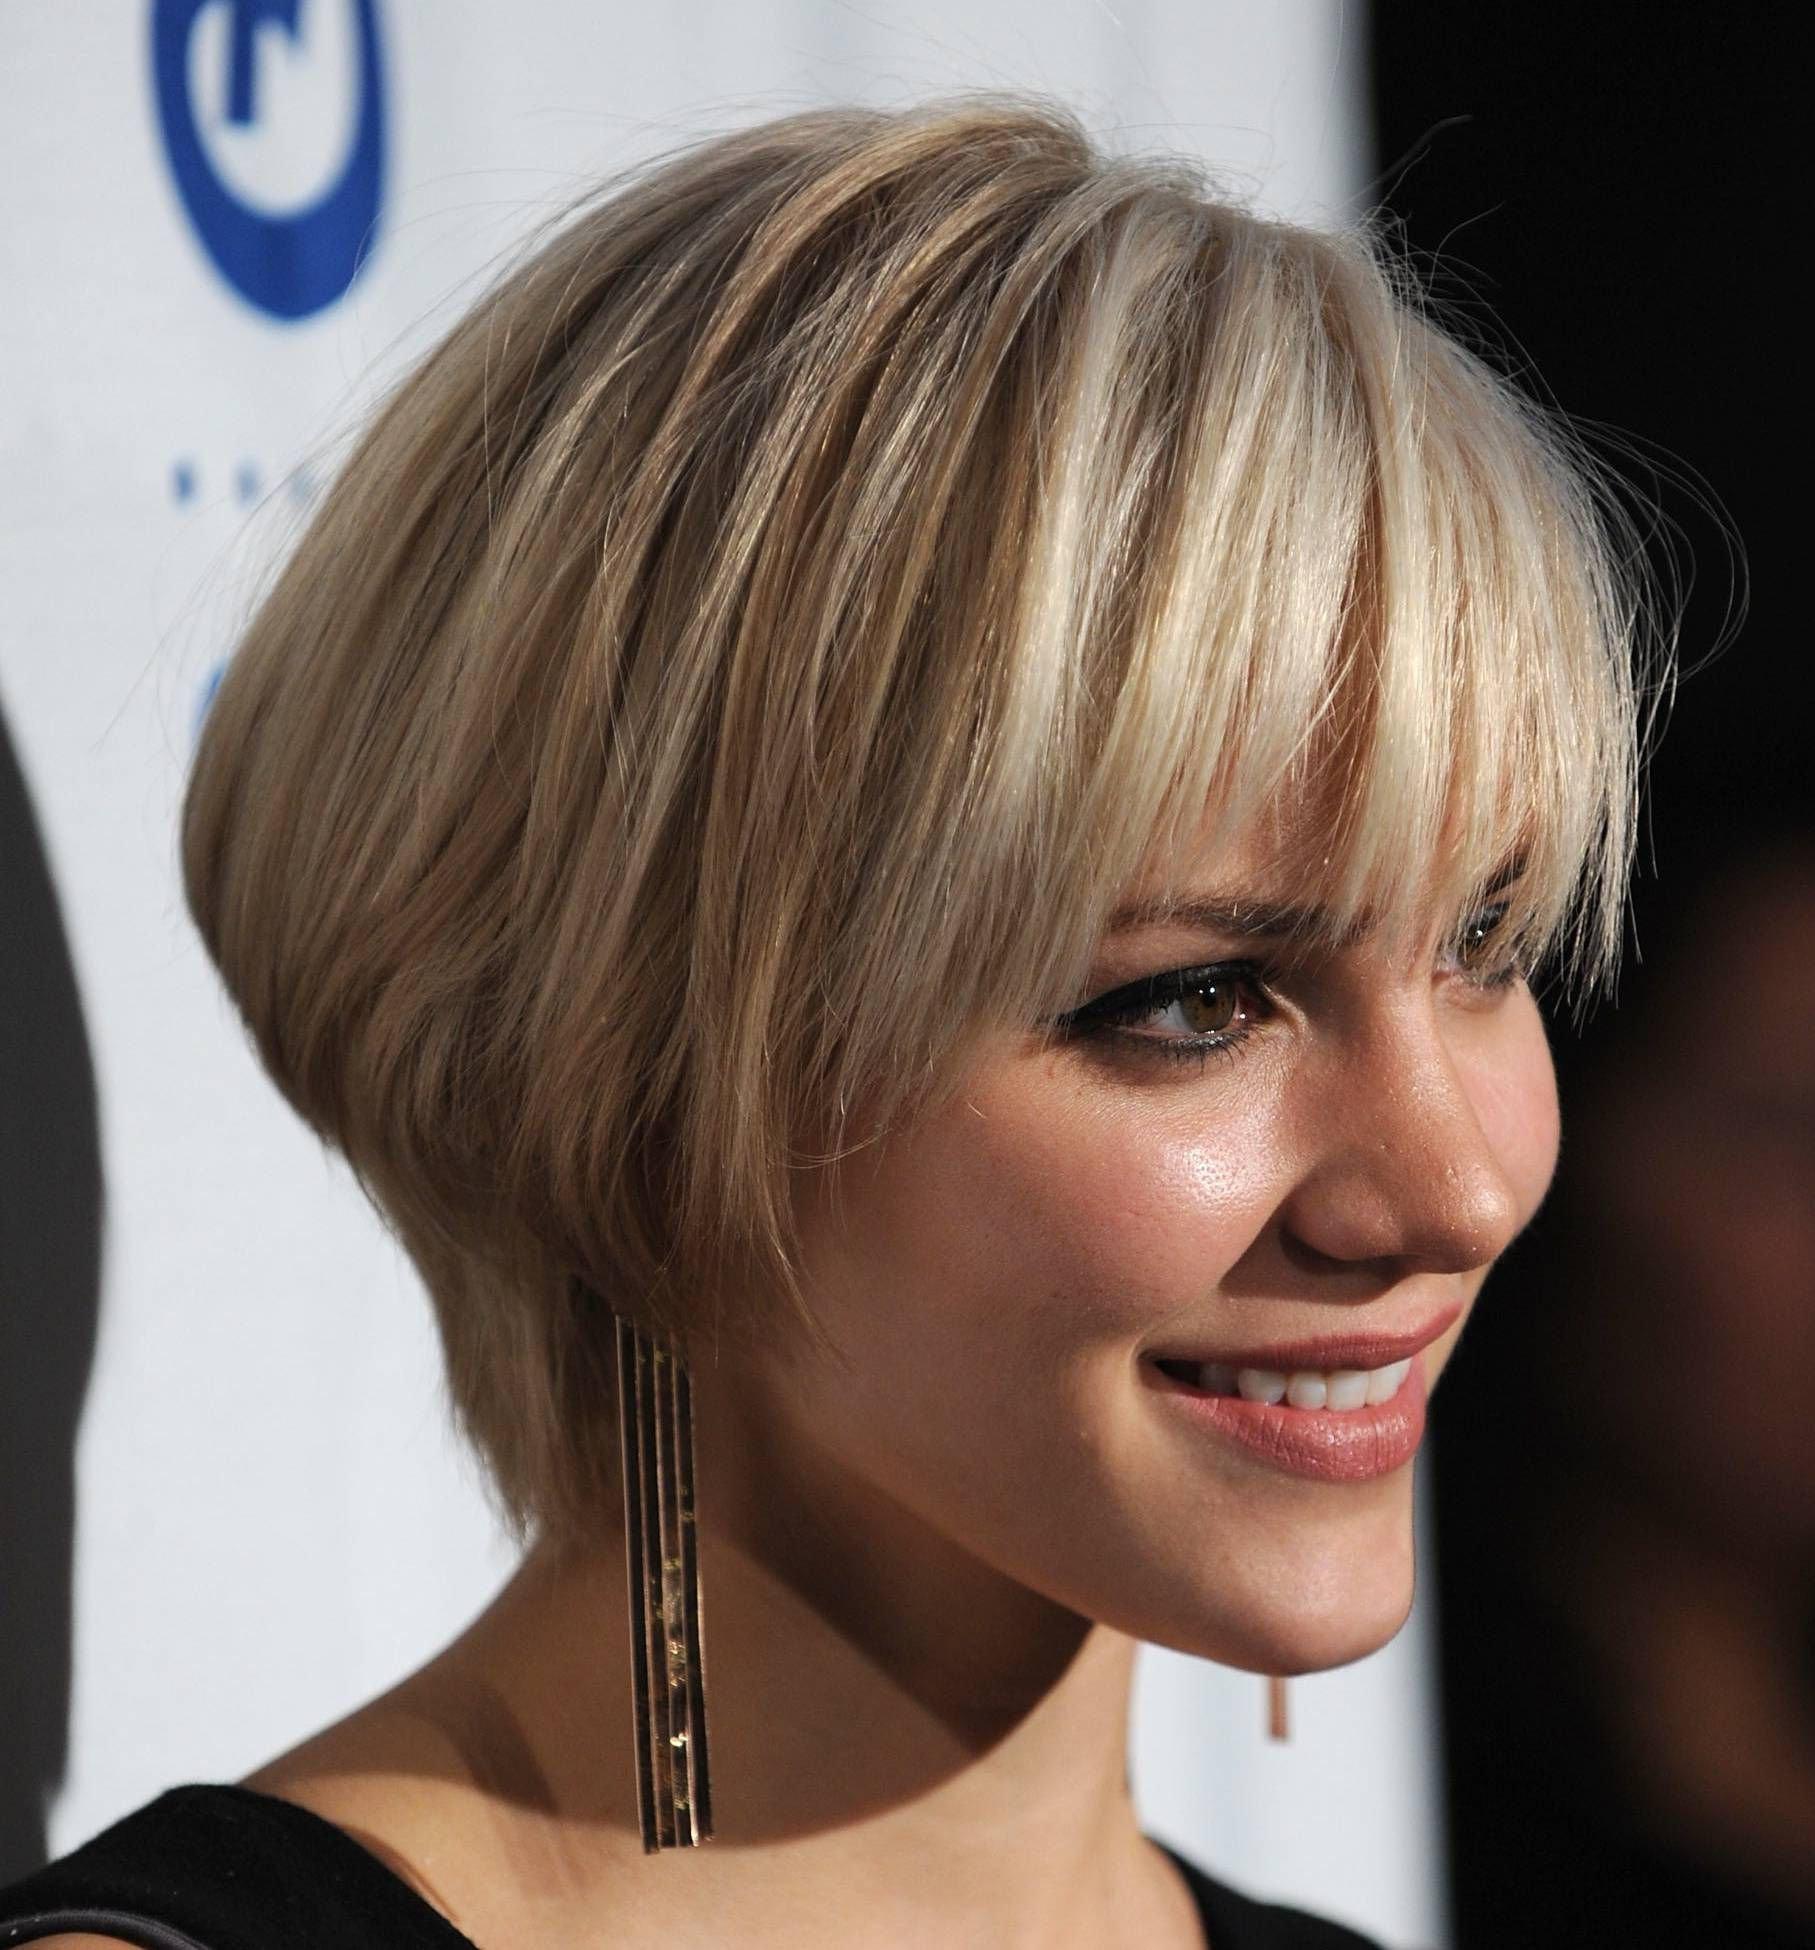 Short Hairstyles For Fine Straight Hair Short Hairstyles Alert - Hairstyles for fine straight hair